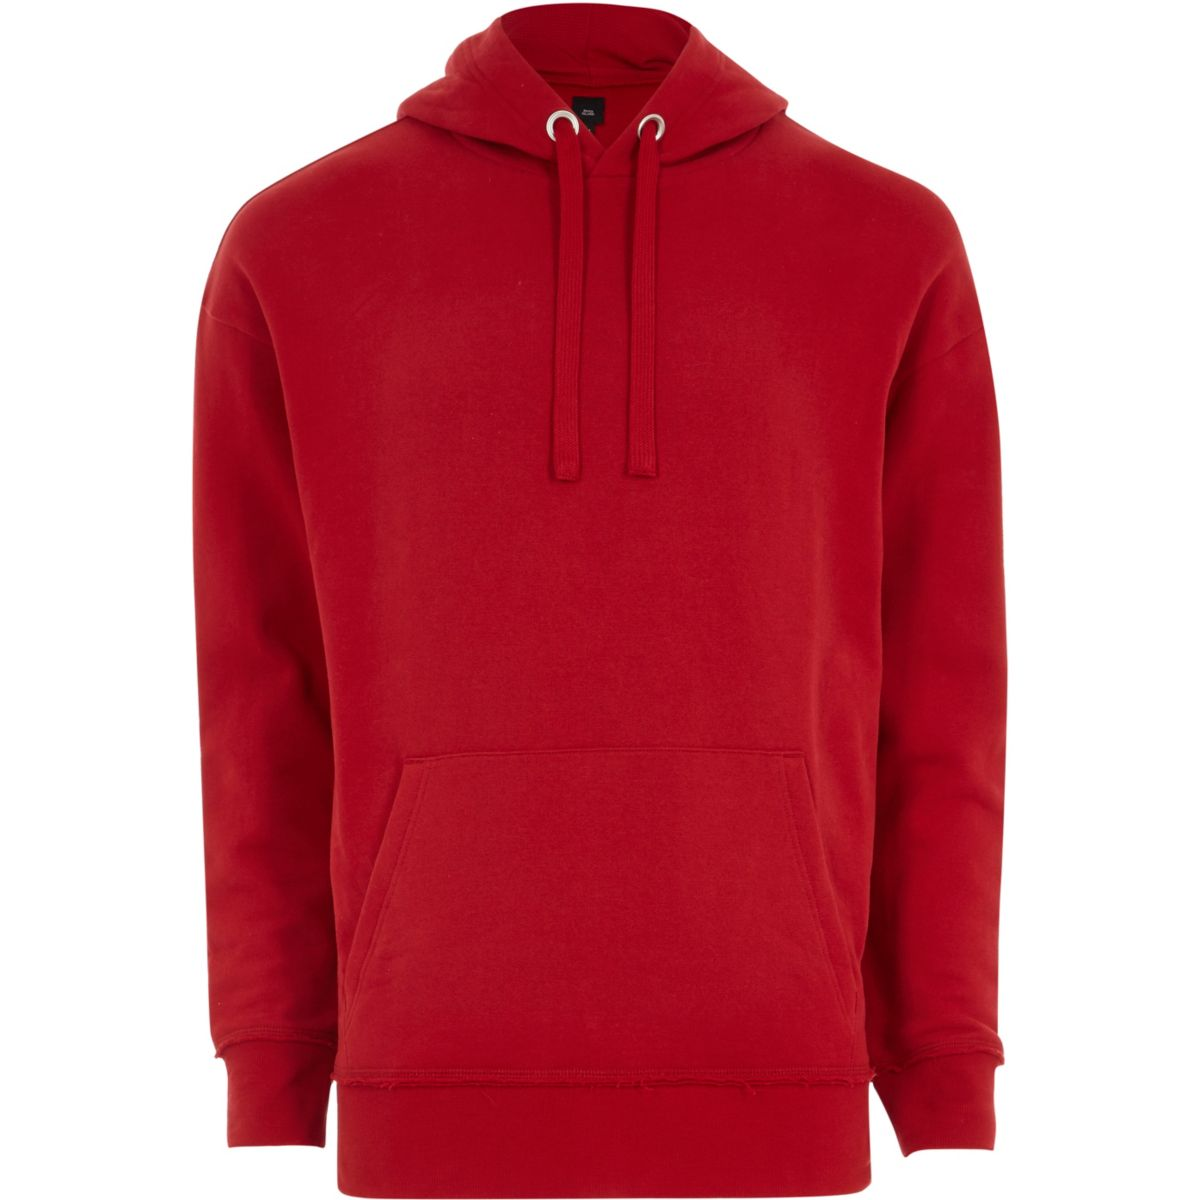 Red oversized fit hoodie